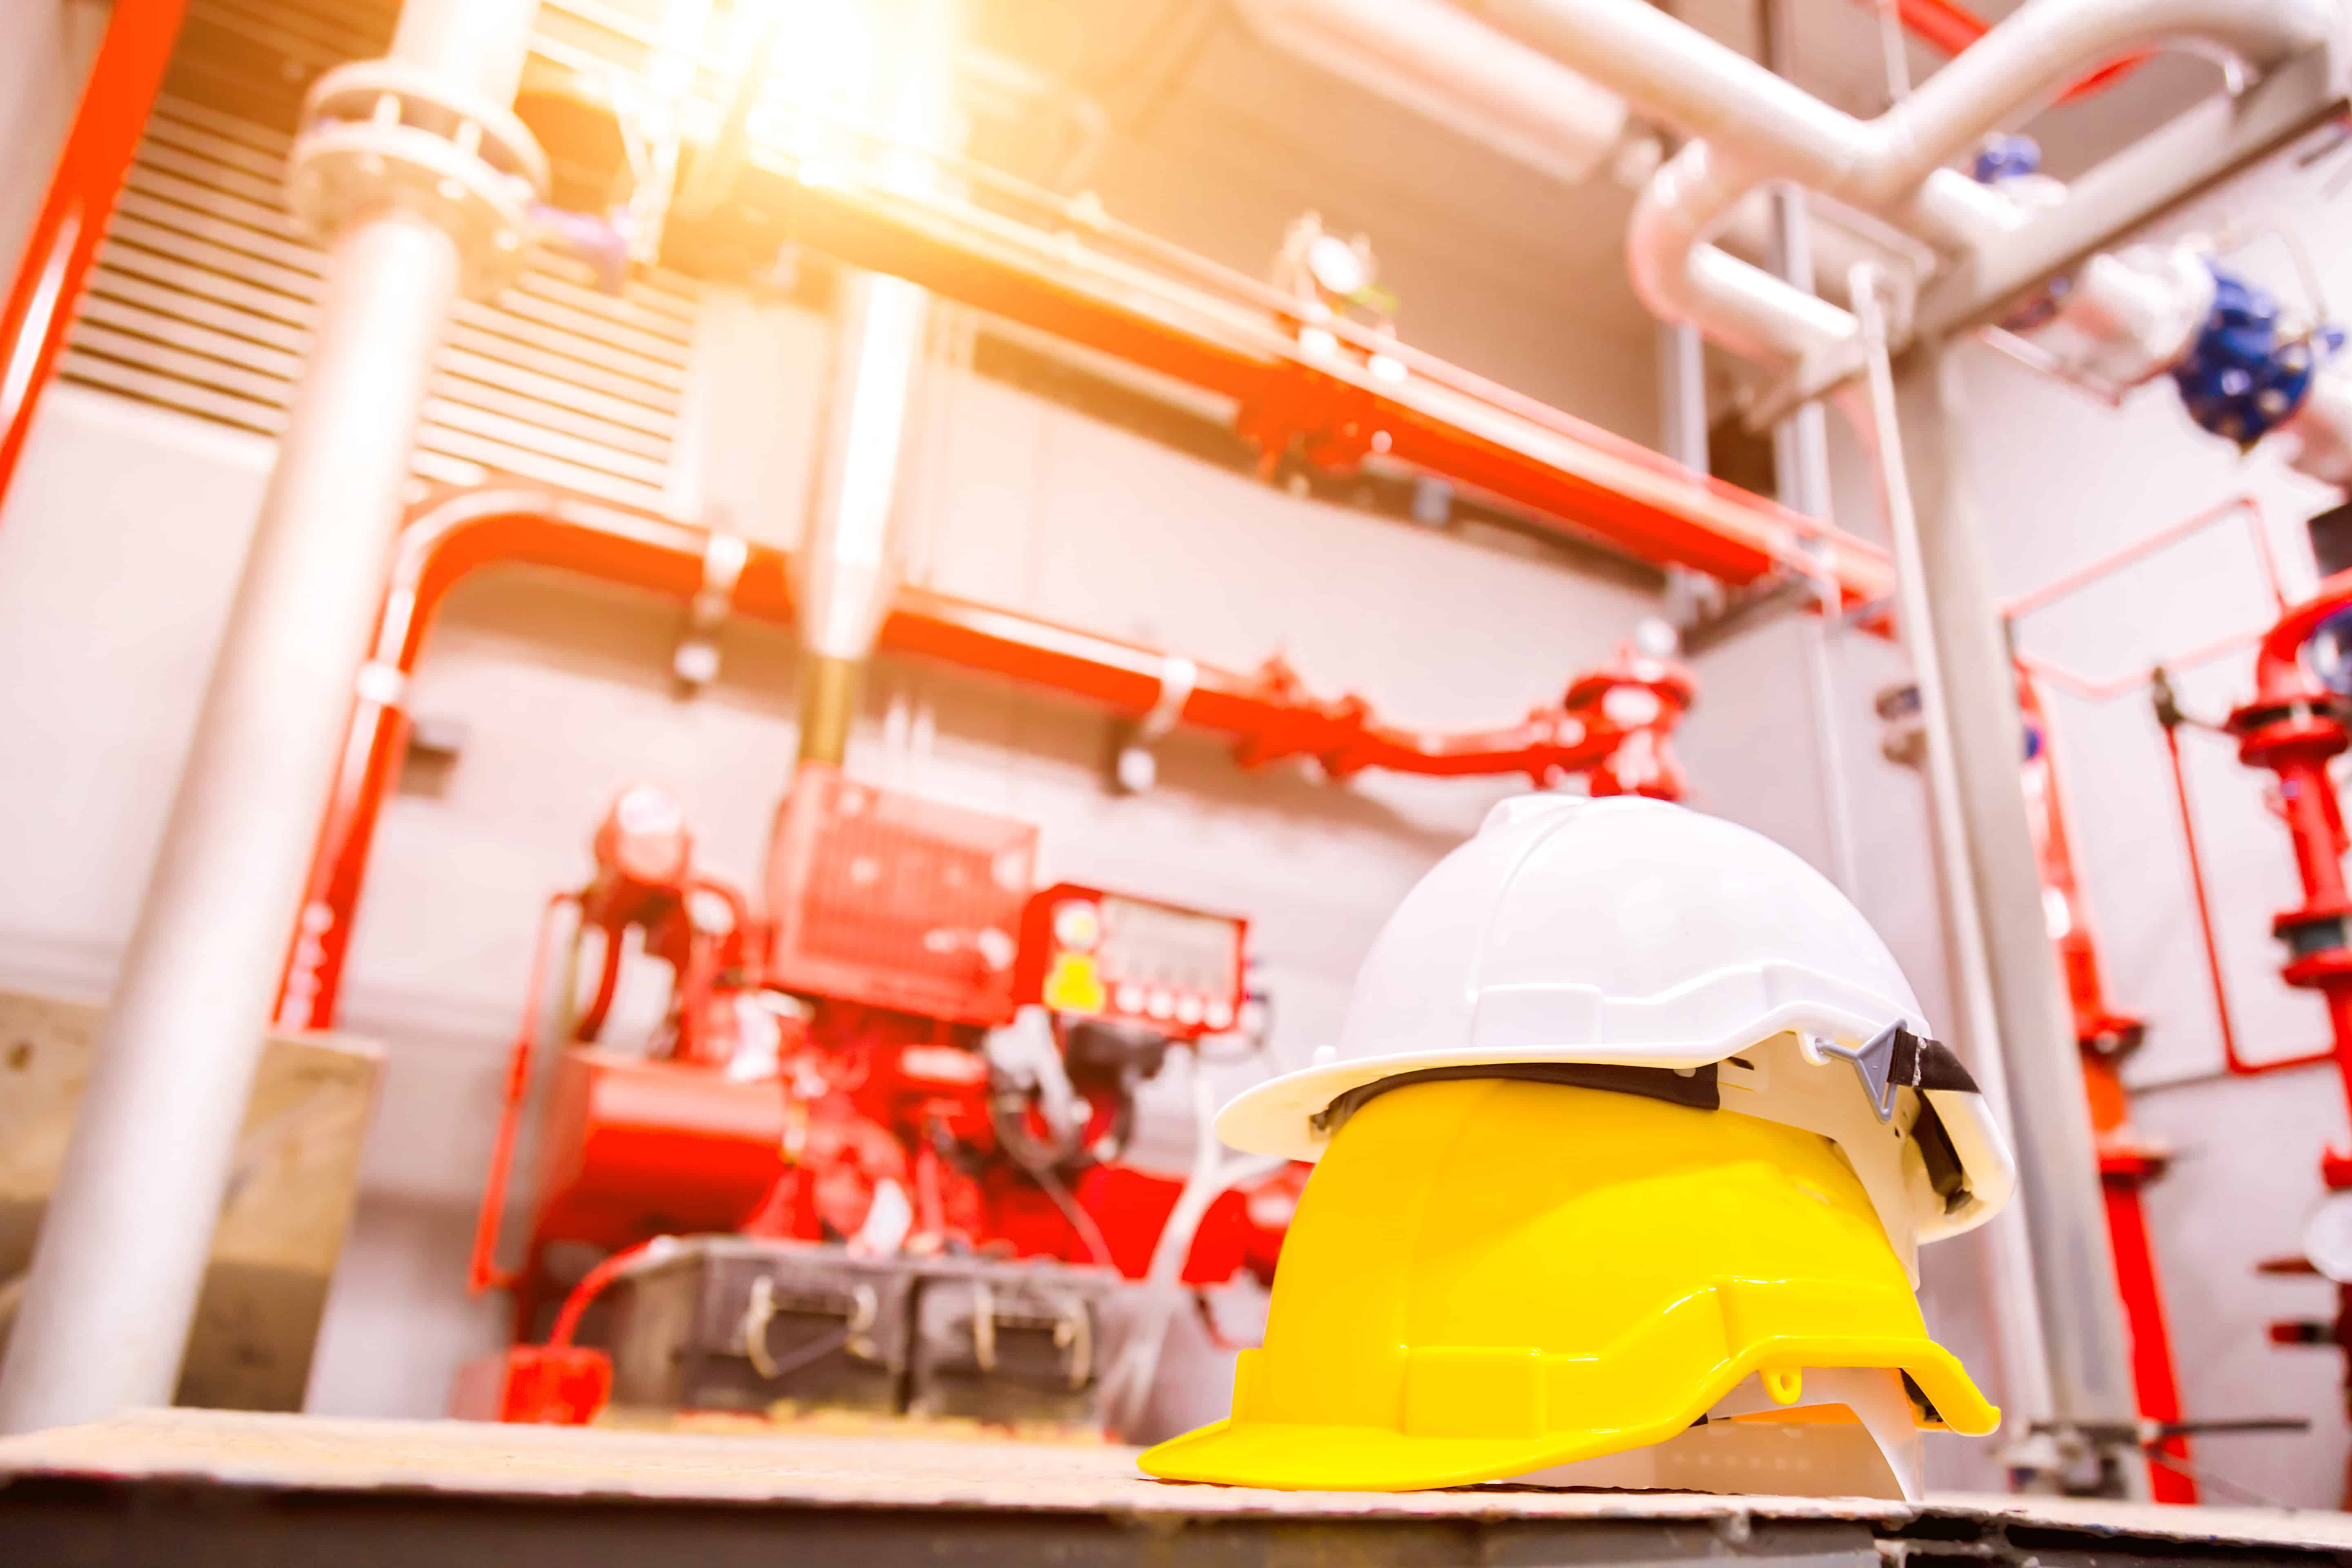 Fire protection inspections